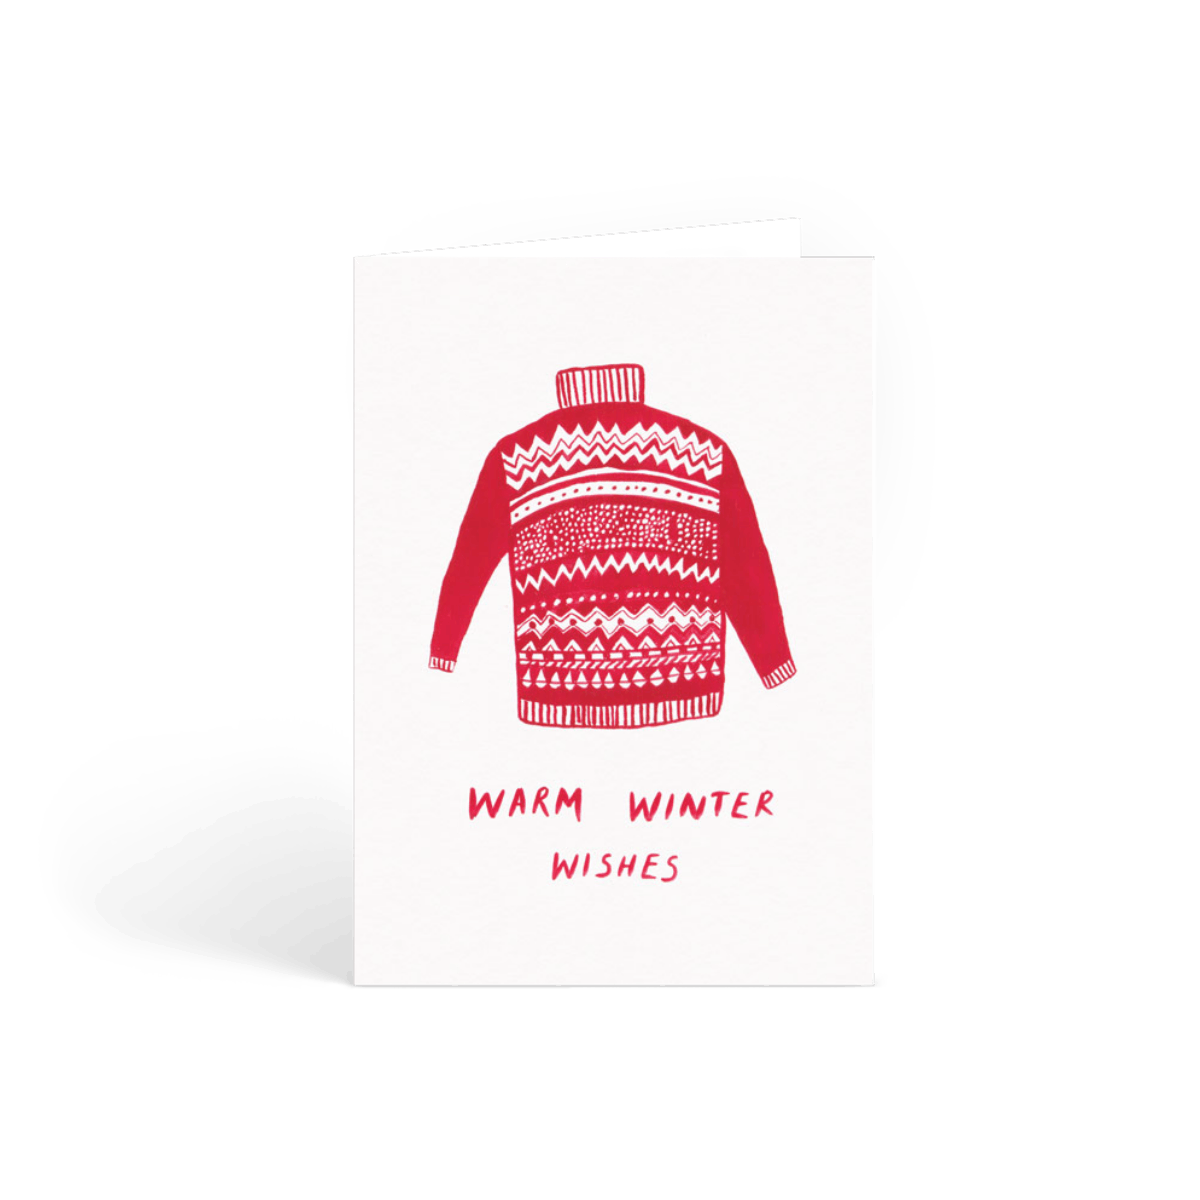 Https%3a%2f%2fwww.papier.com%2fproduct image%2f11512%2f2%2fwinter jumper 2921 front 1570653595.png?ixlib=rb 1.1